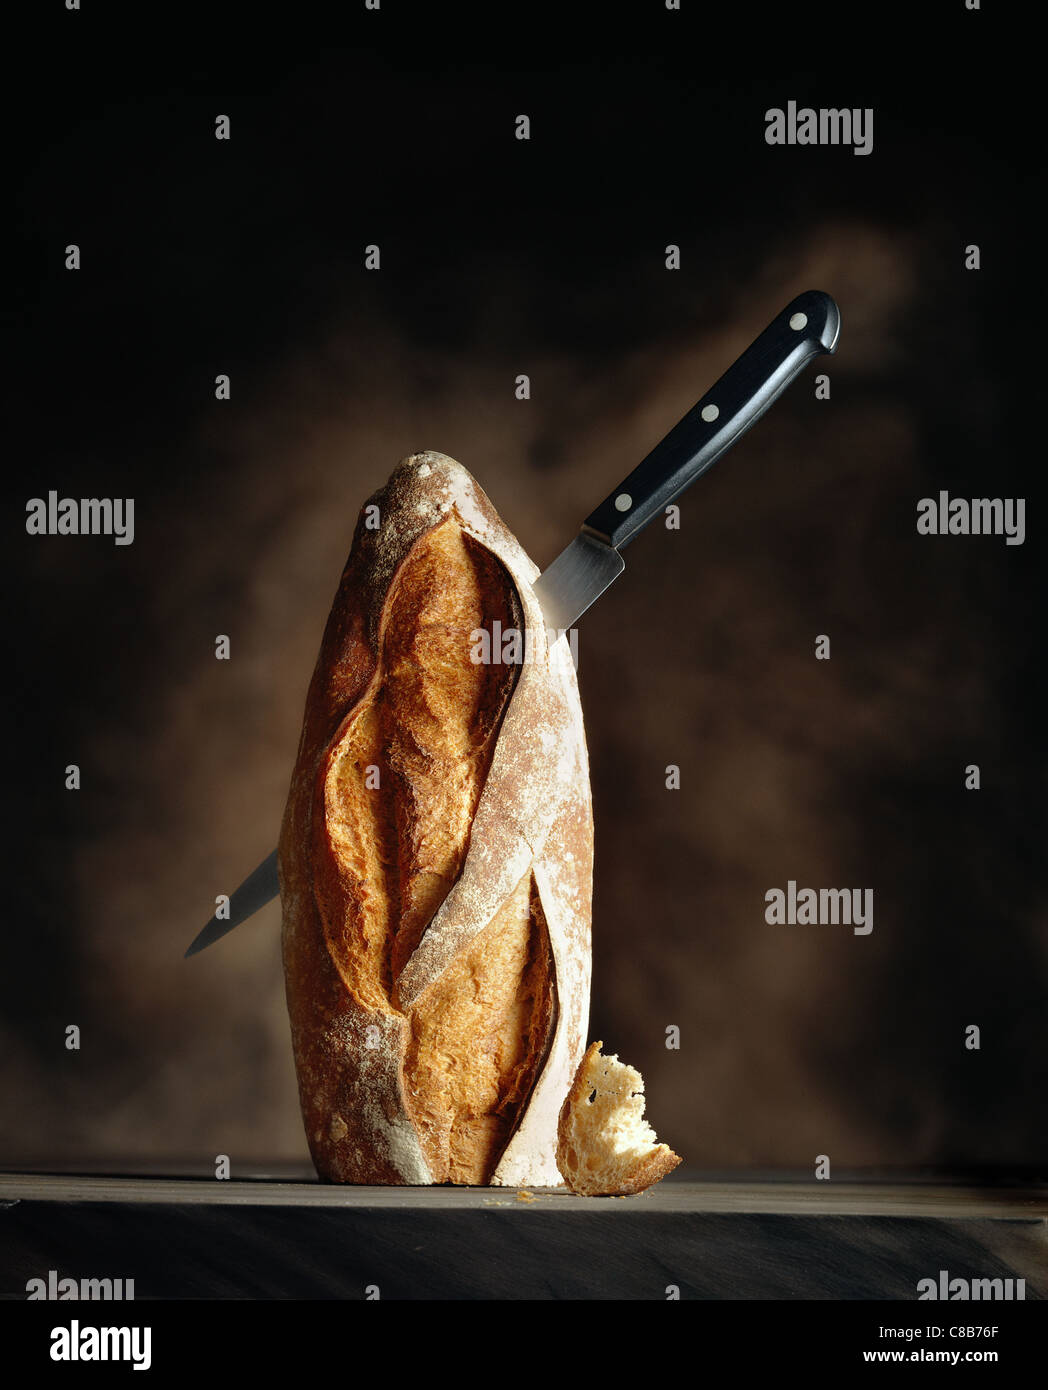 upright loaf of bread with knife - Stock Image